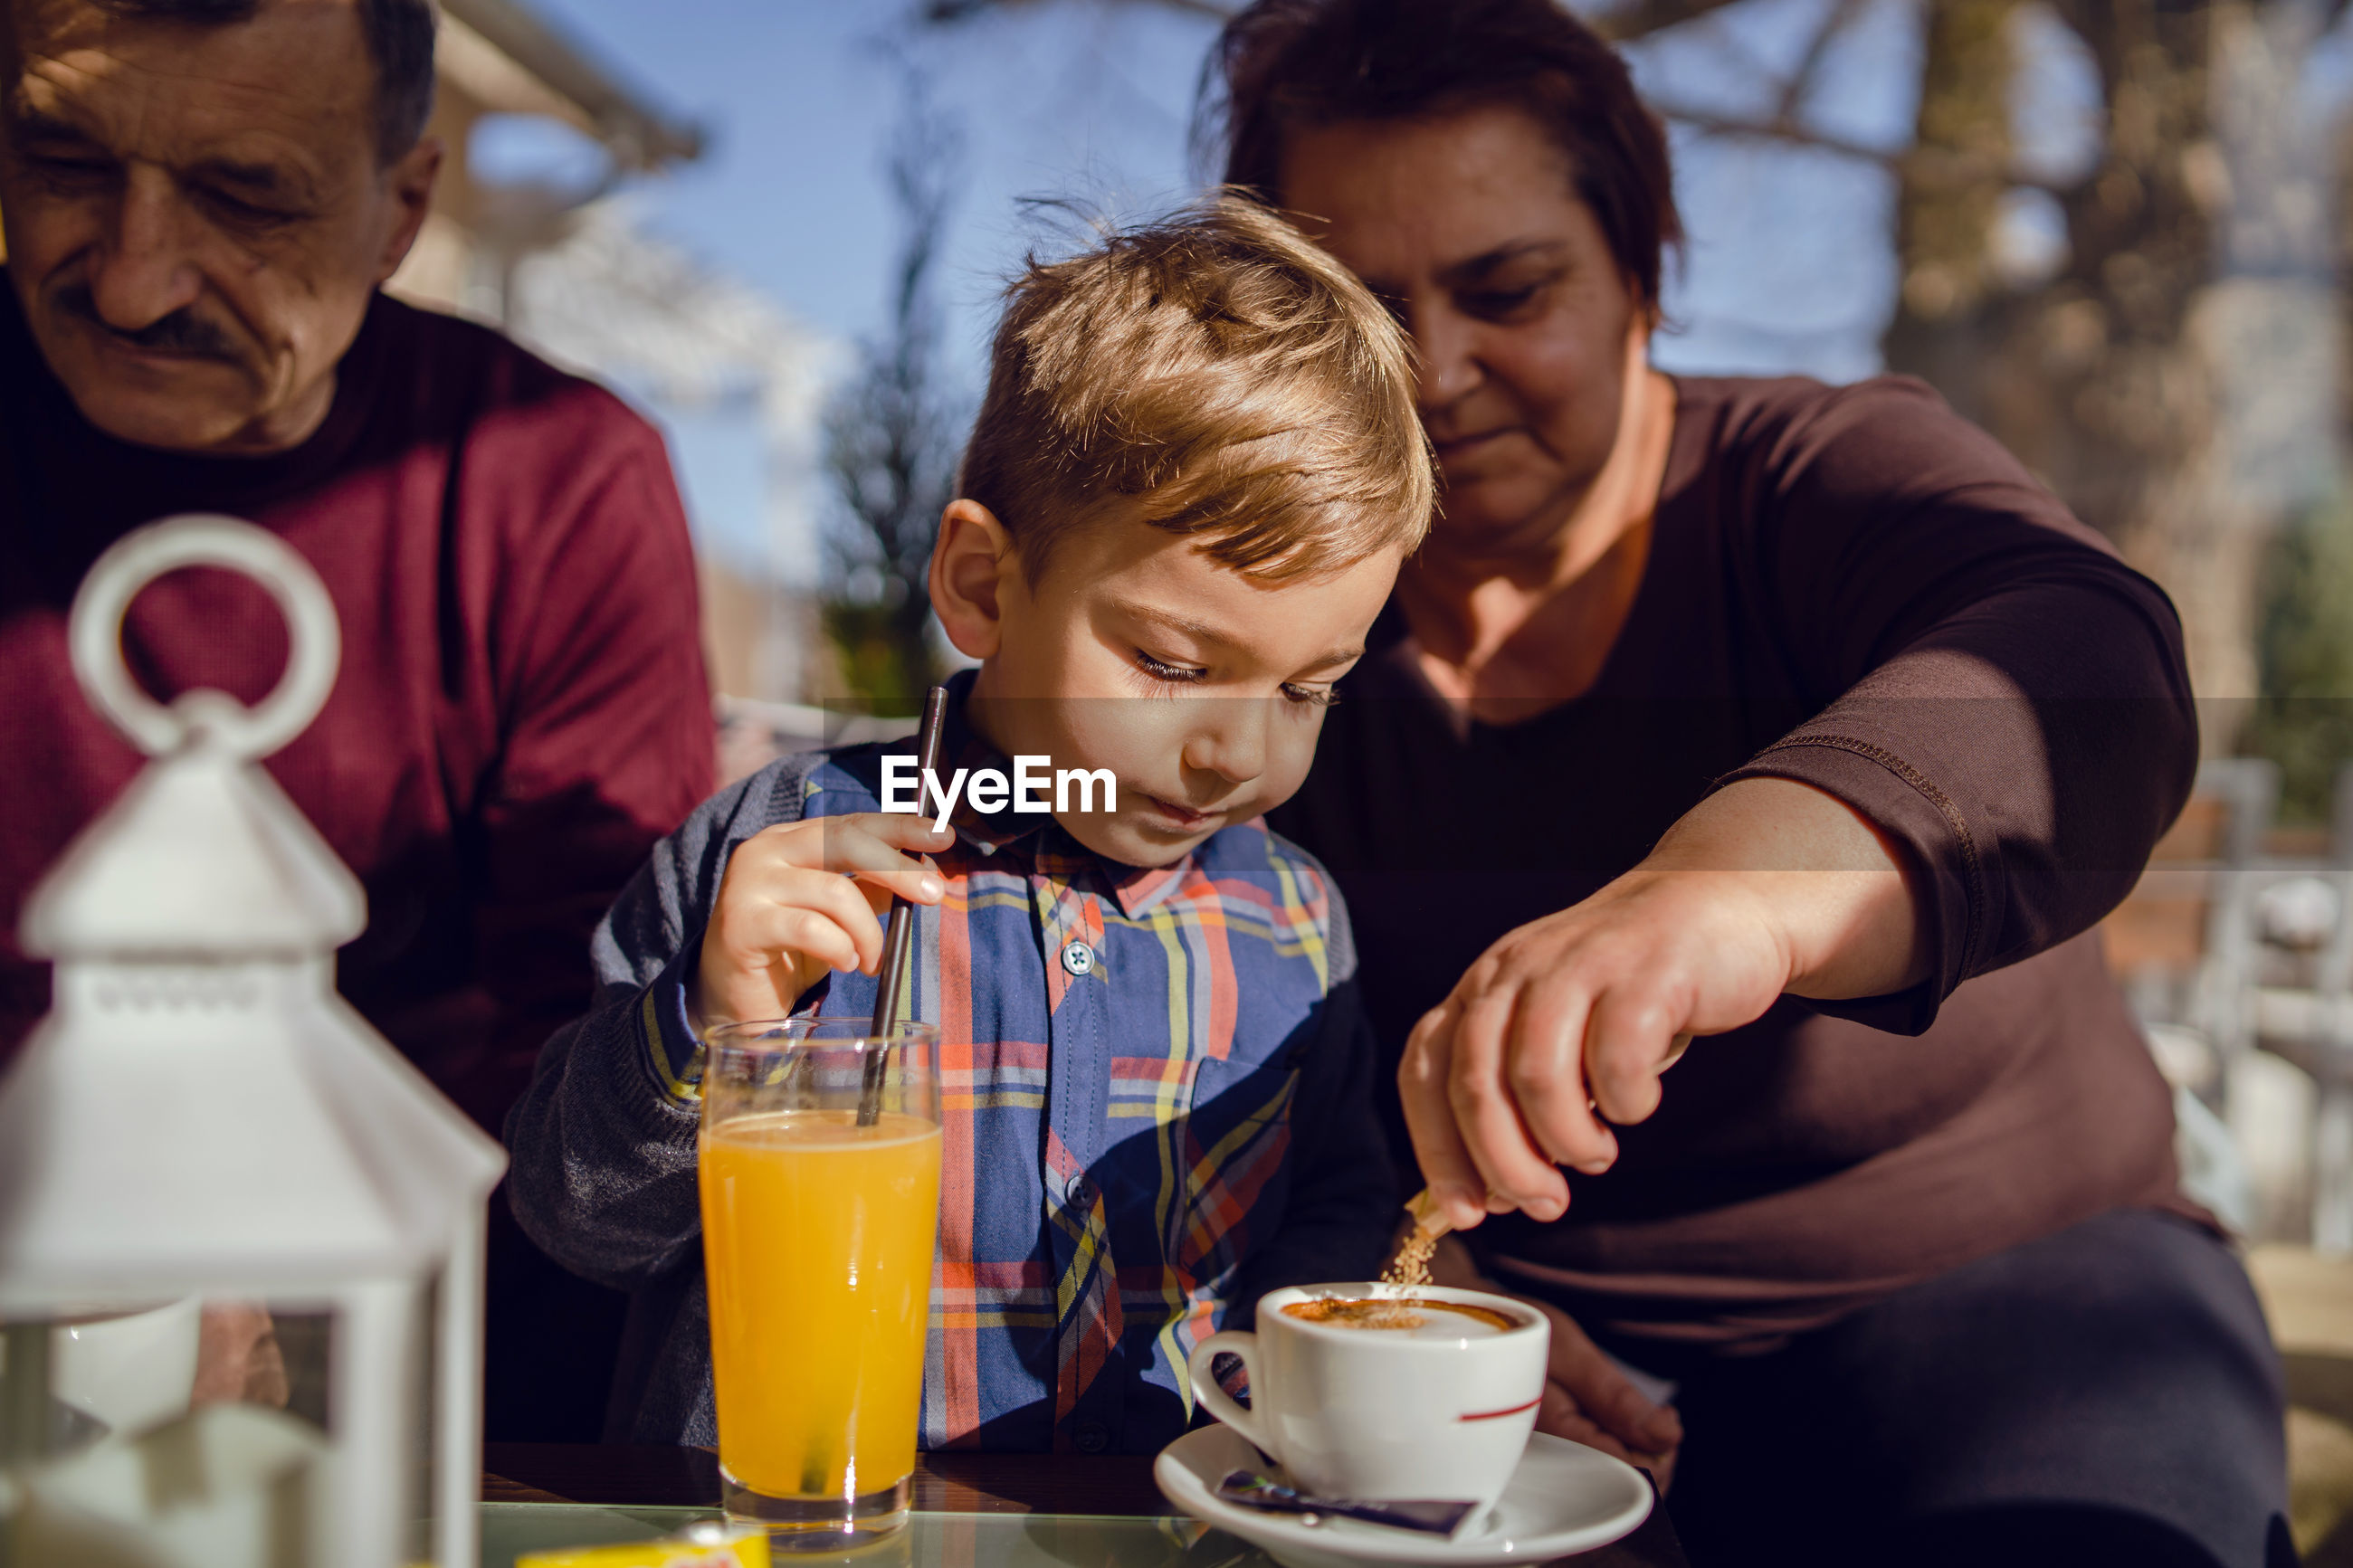 Boy looking at grandmother making coffee on table